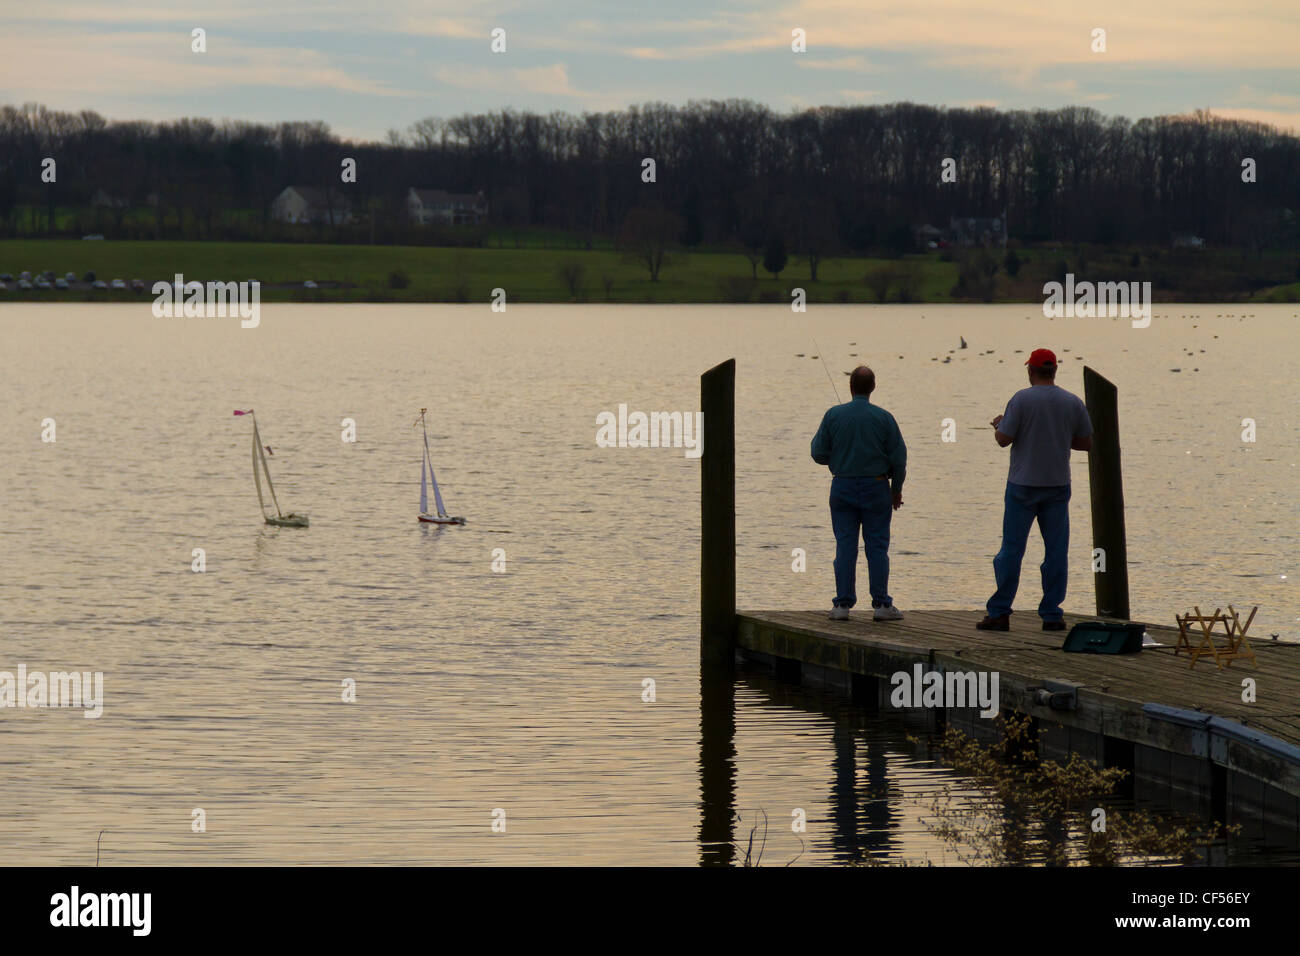 Two men operating radio-controlled boats on a lake - Stock Image